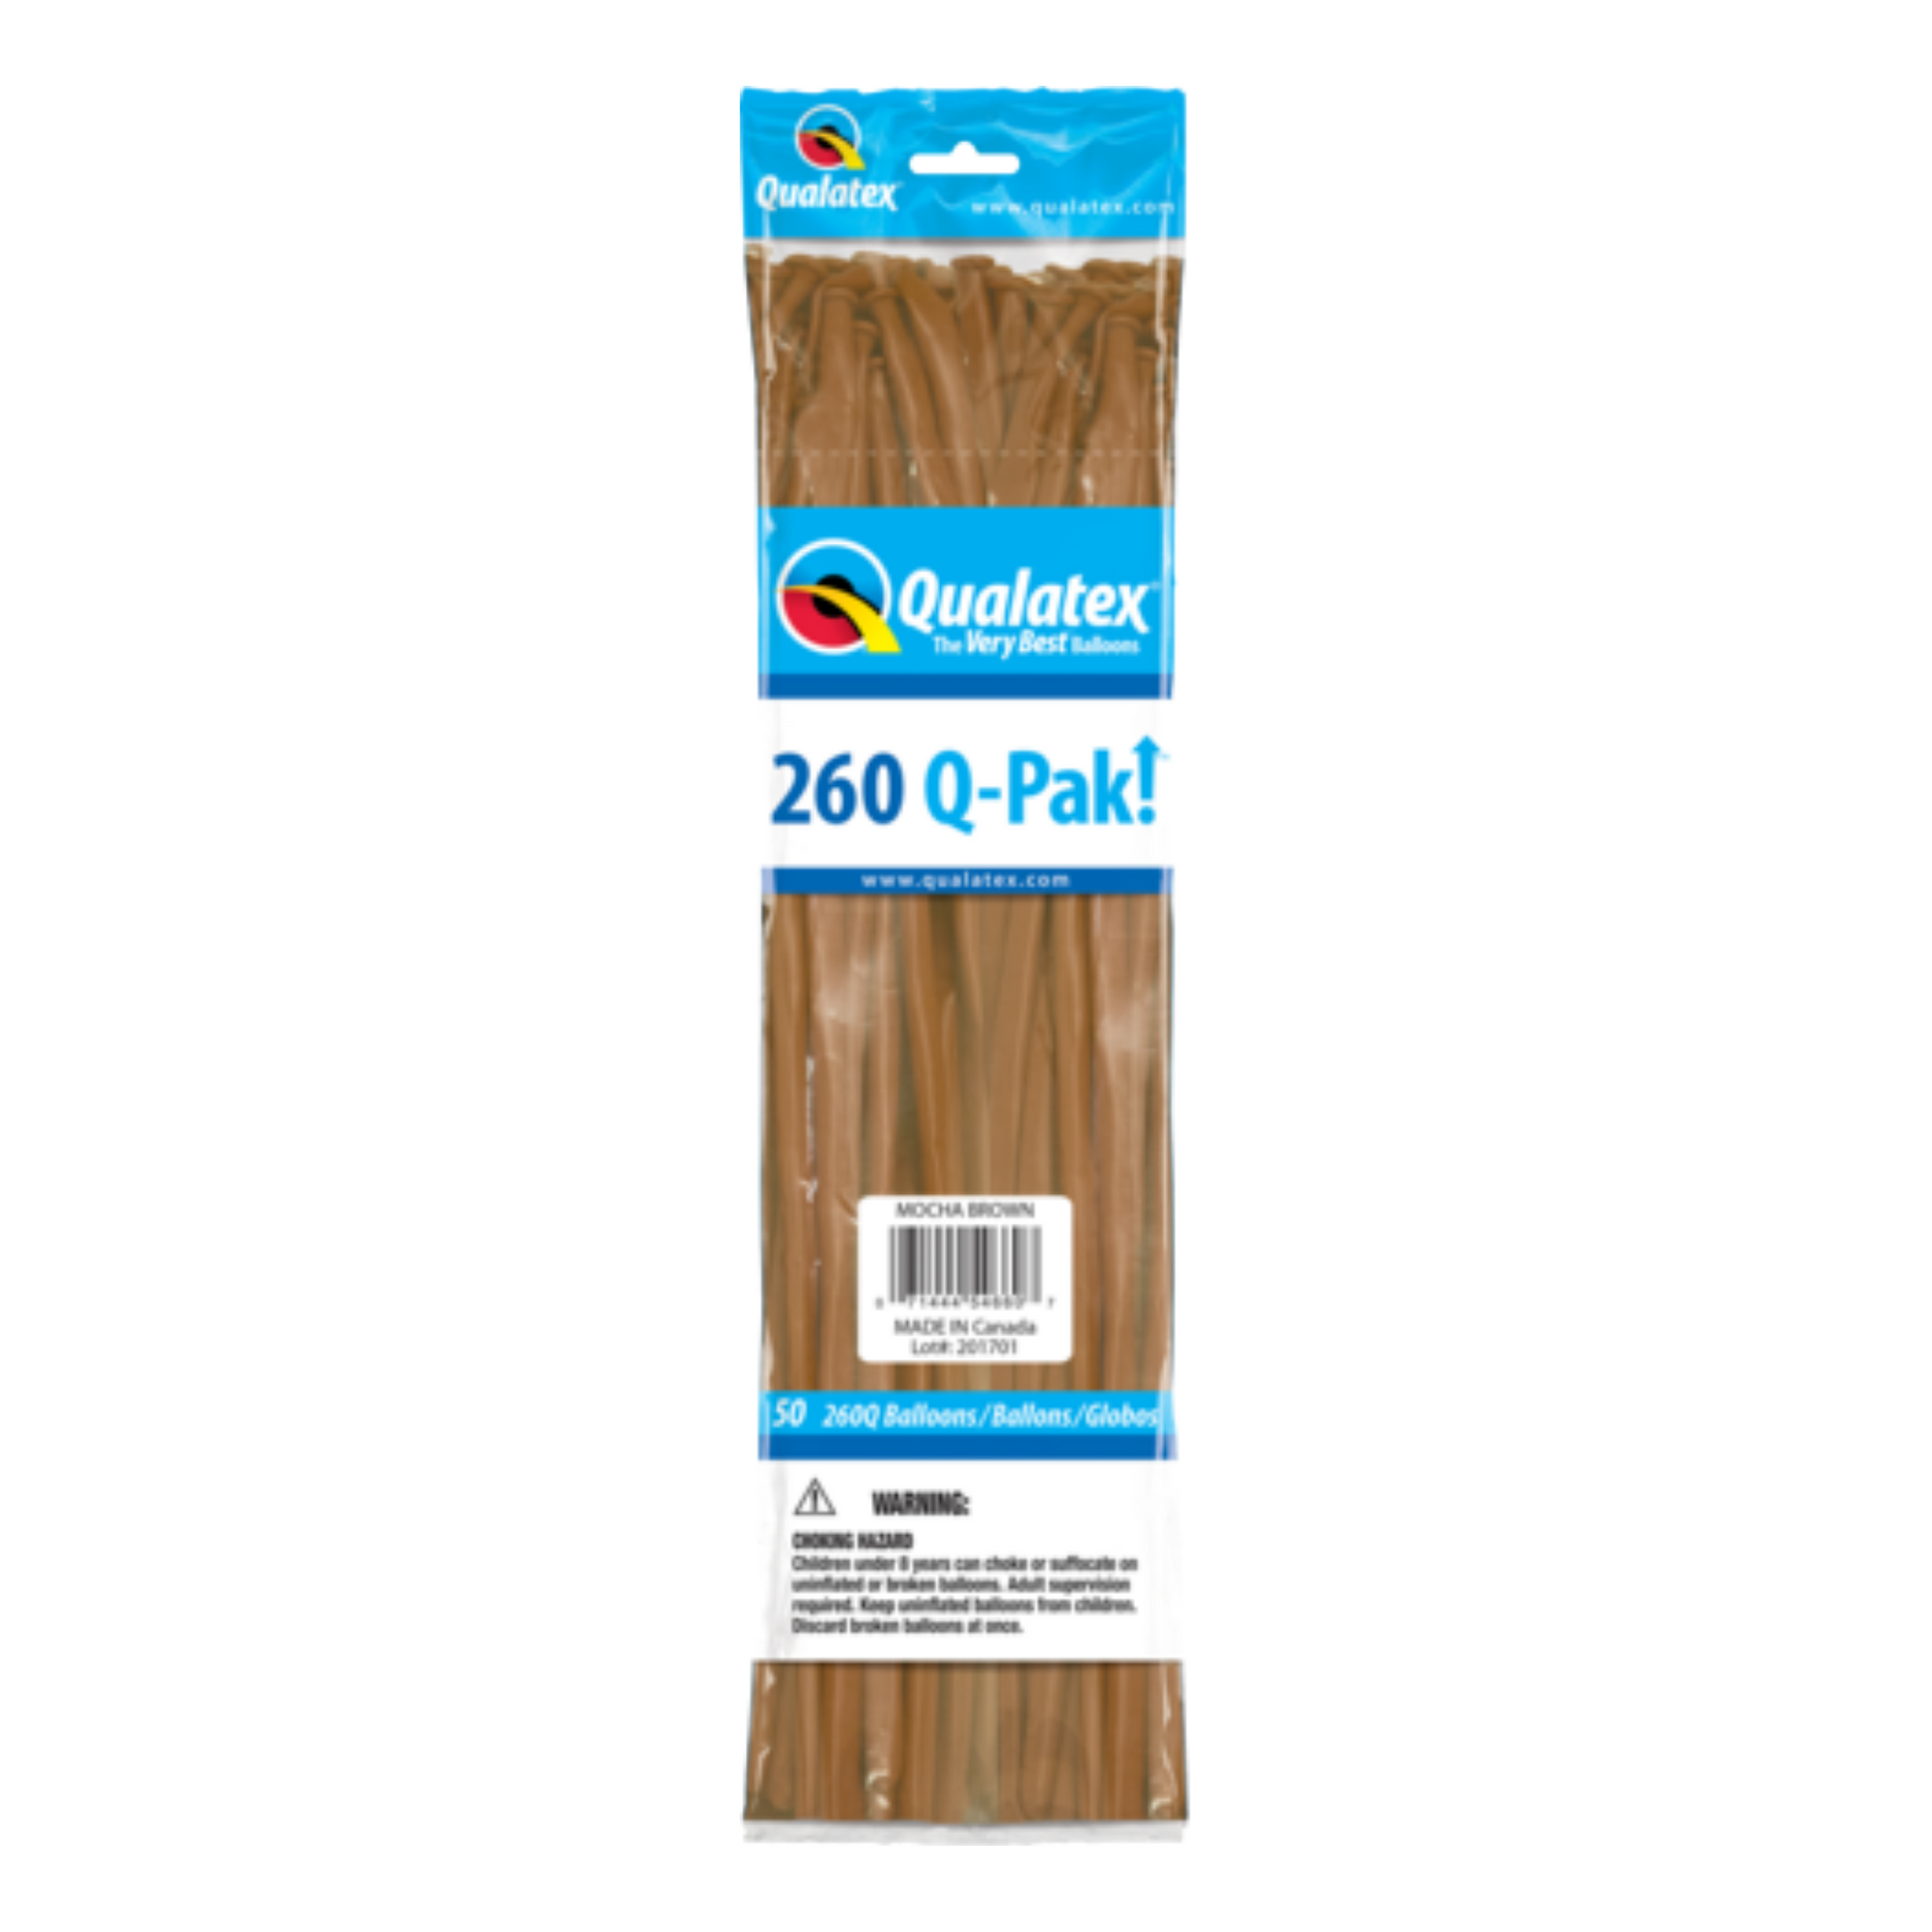 Qualatex 260 Q-Pak (50 pack) BROWN MOCHA